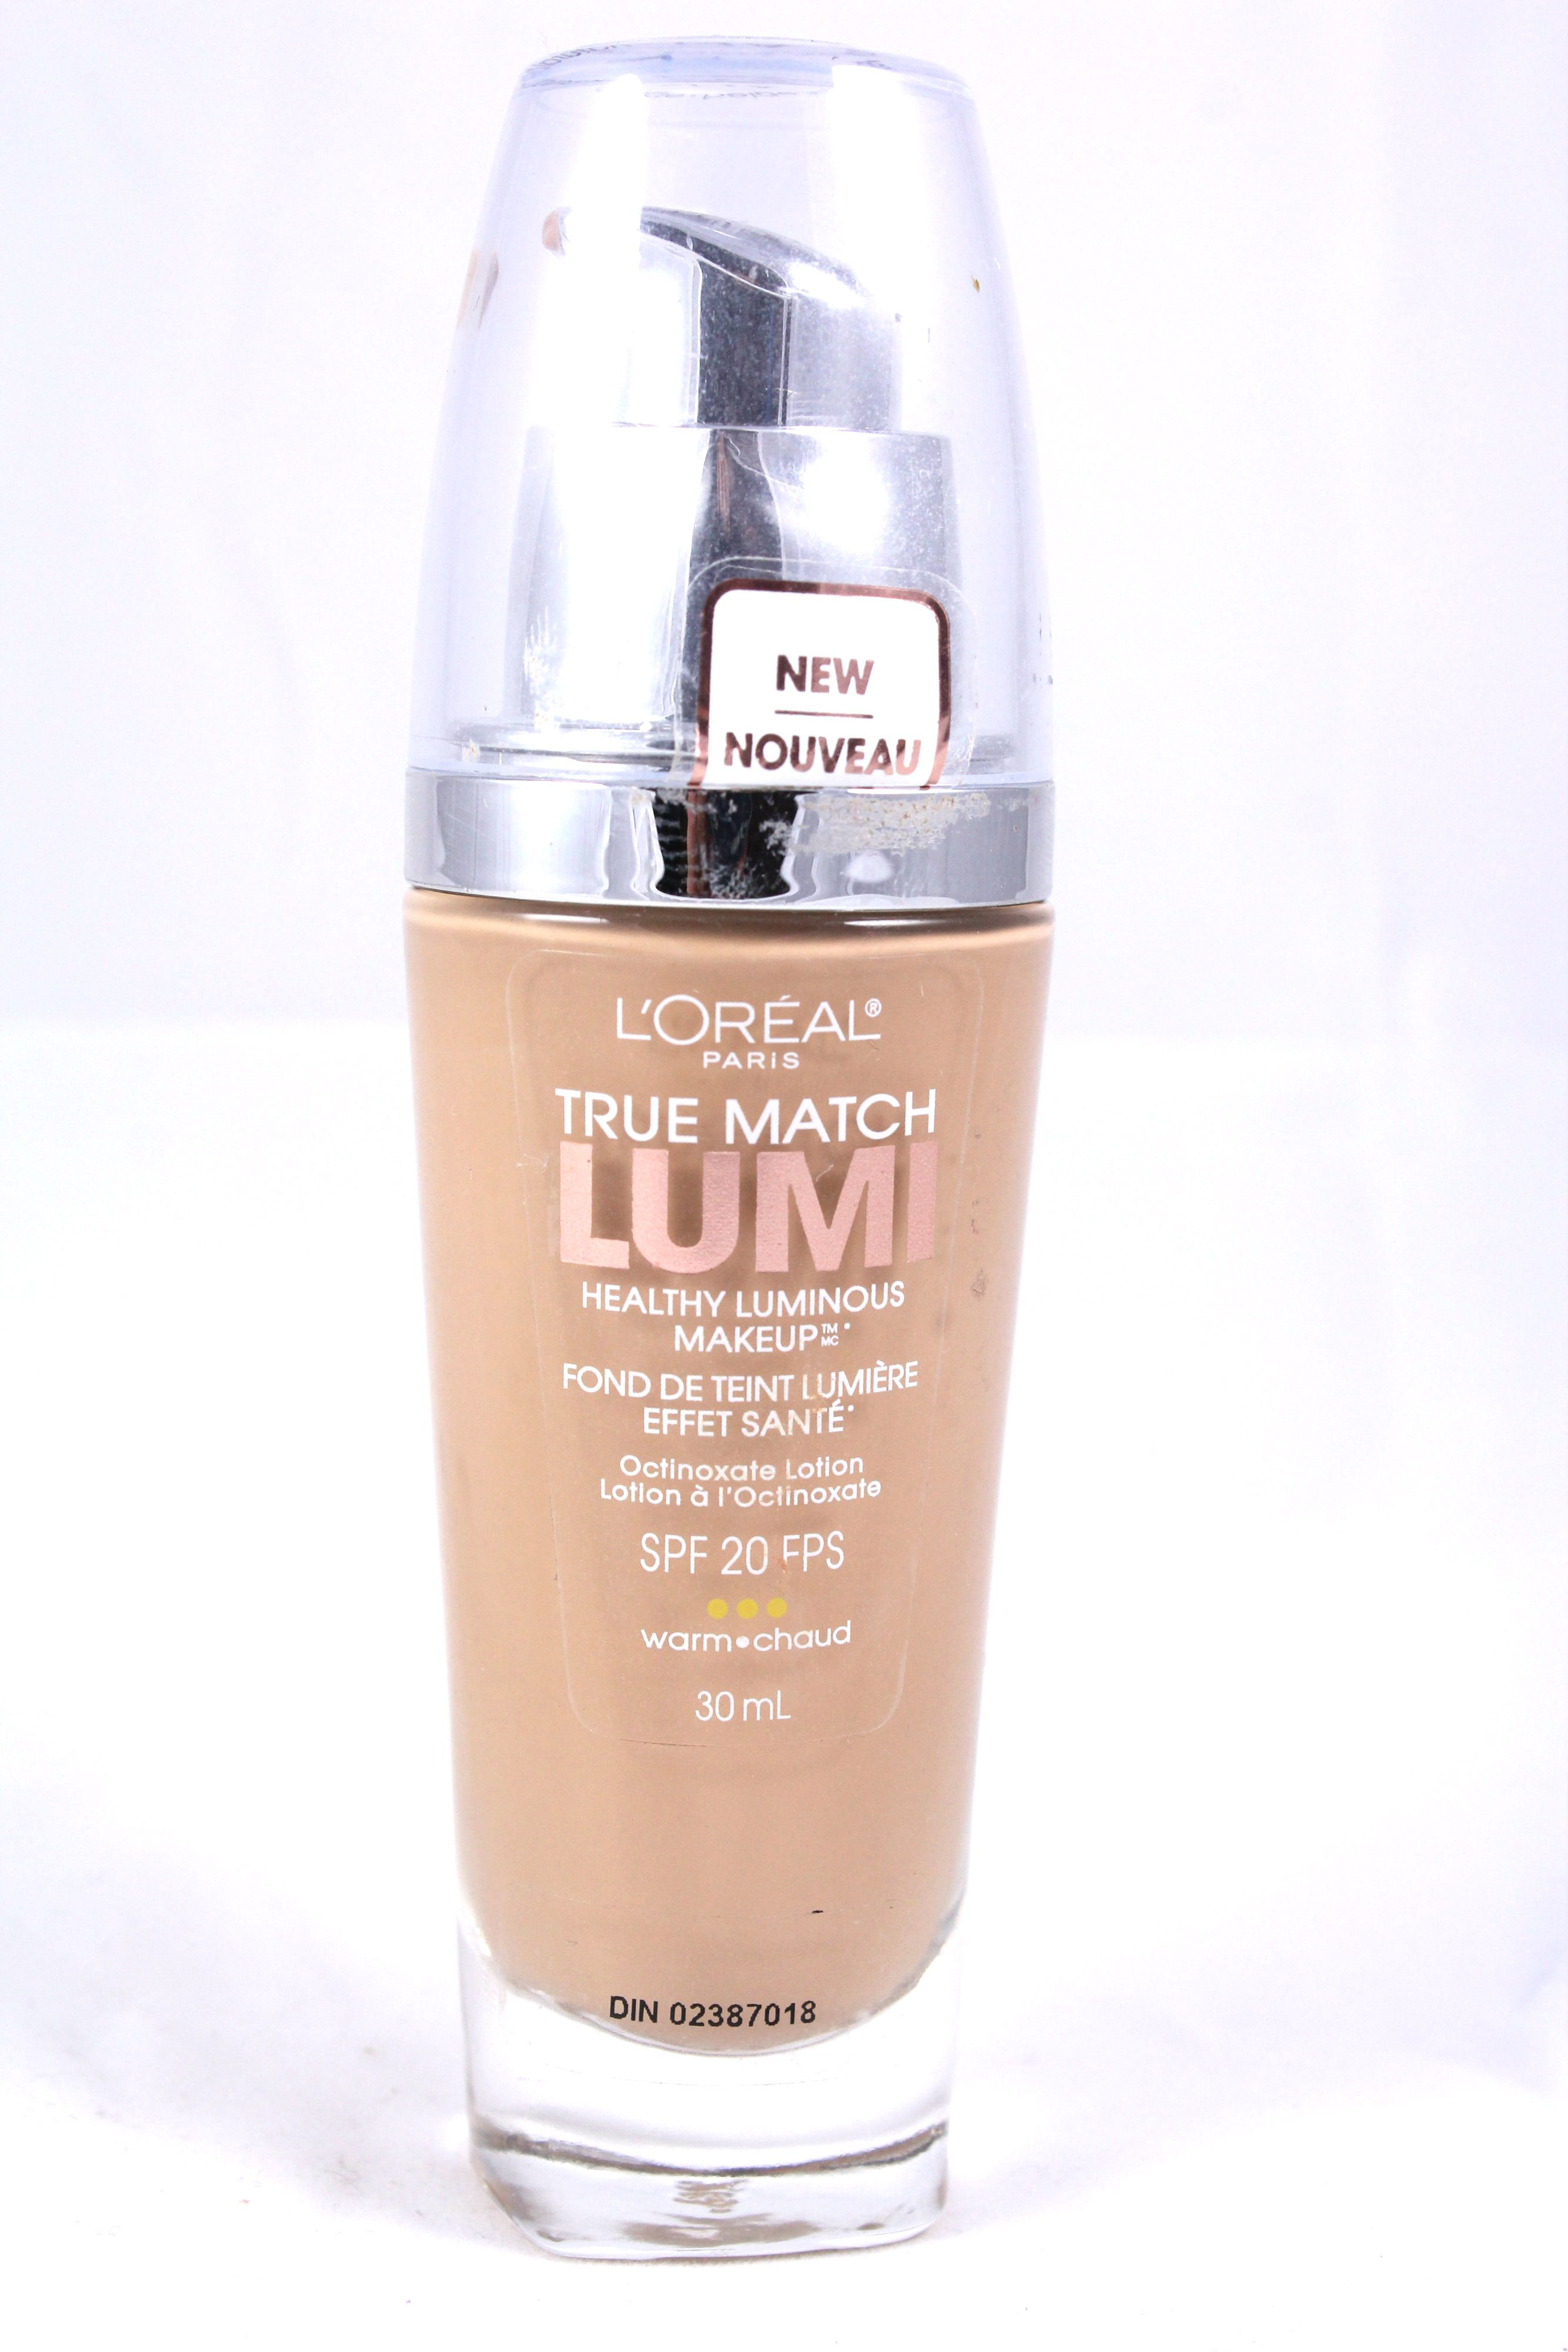 L'Oreal True Match Lumi Foundation Natural Beige- Review, Swatches & Pictures | Beautetude